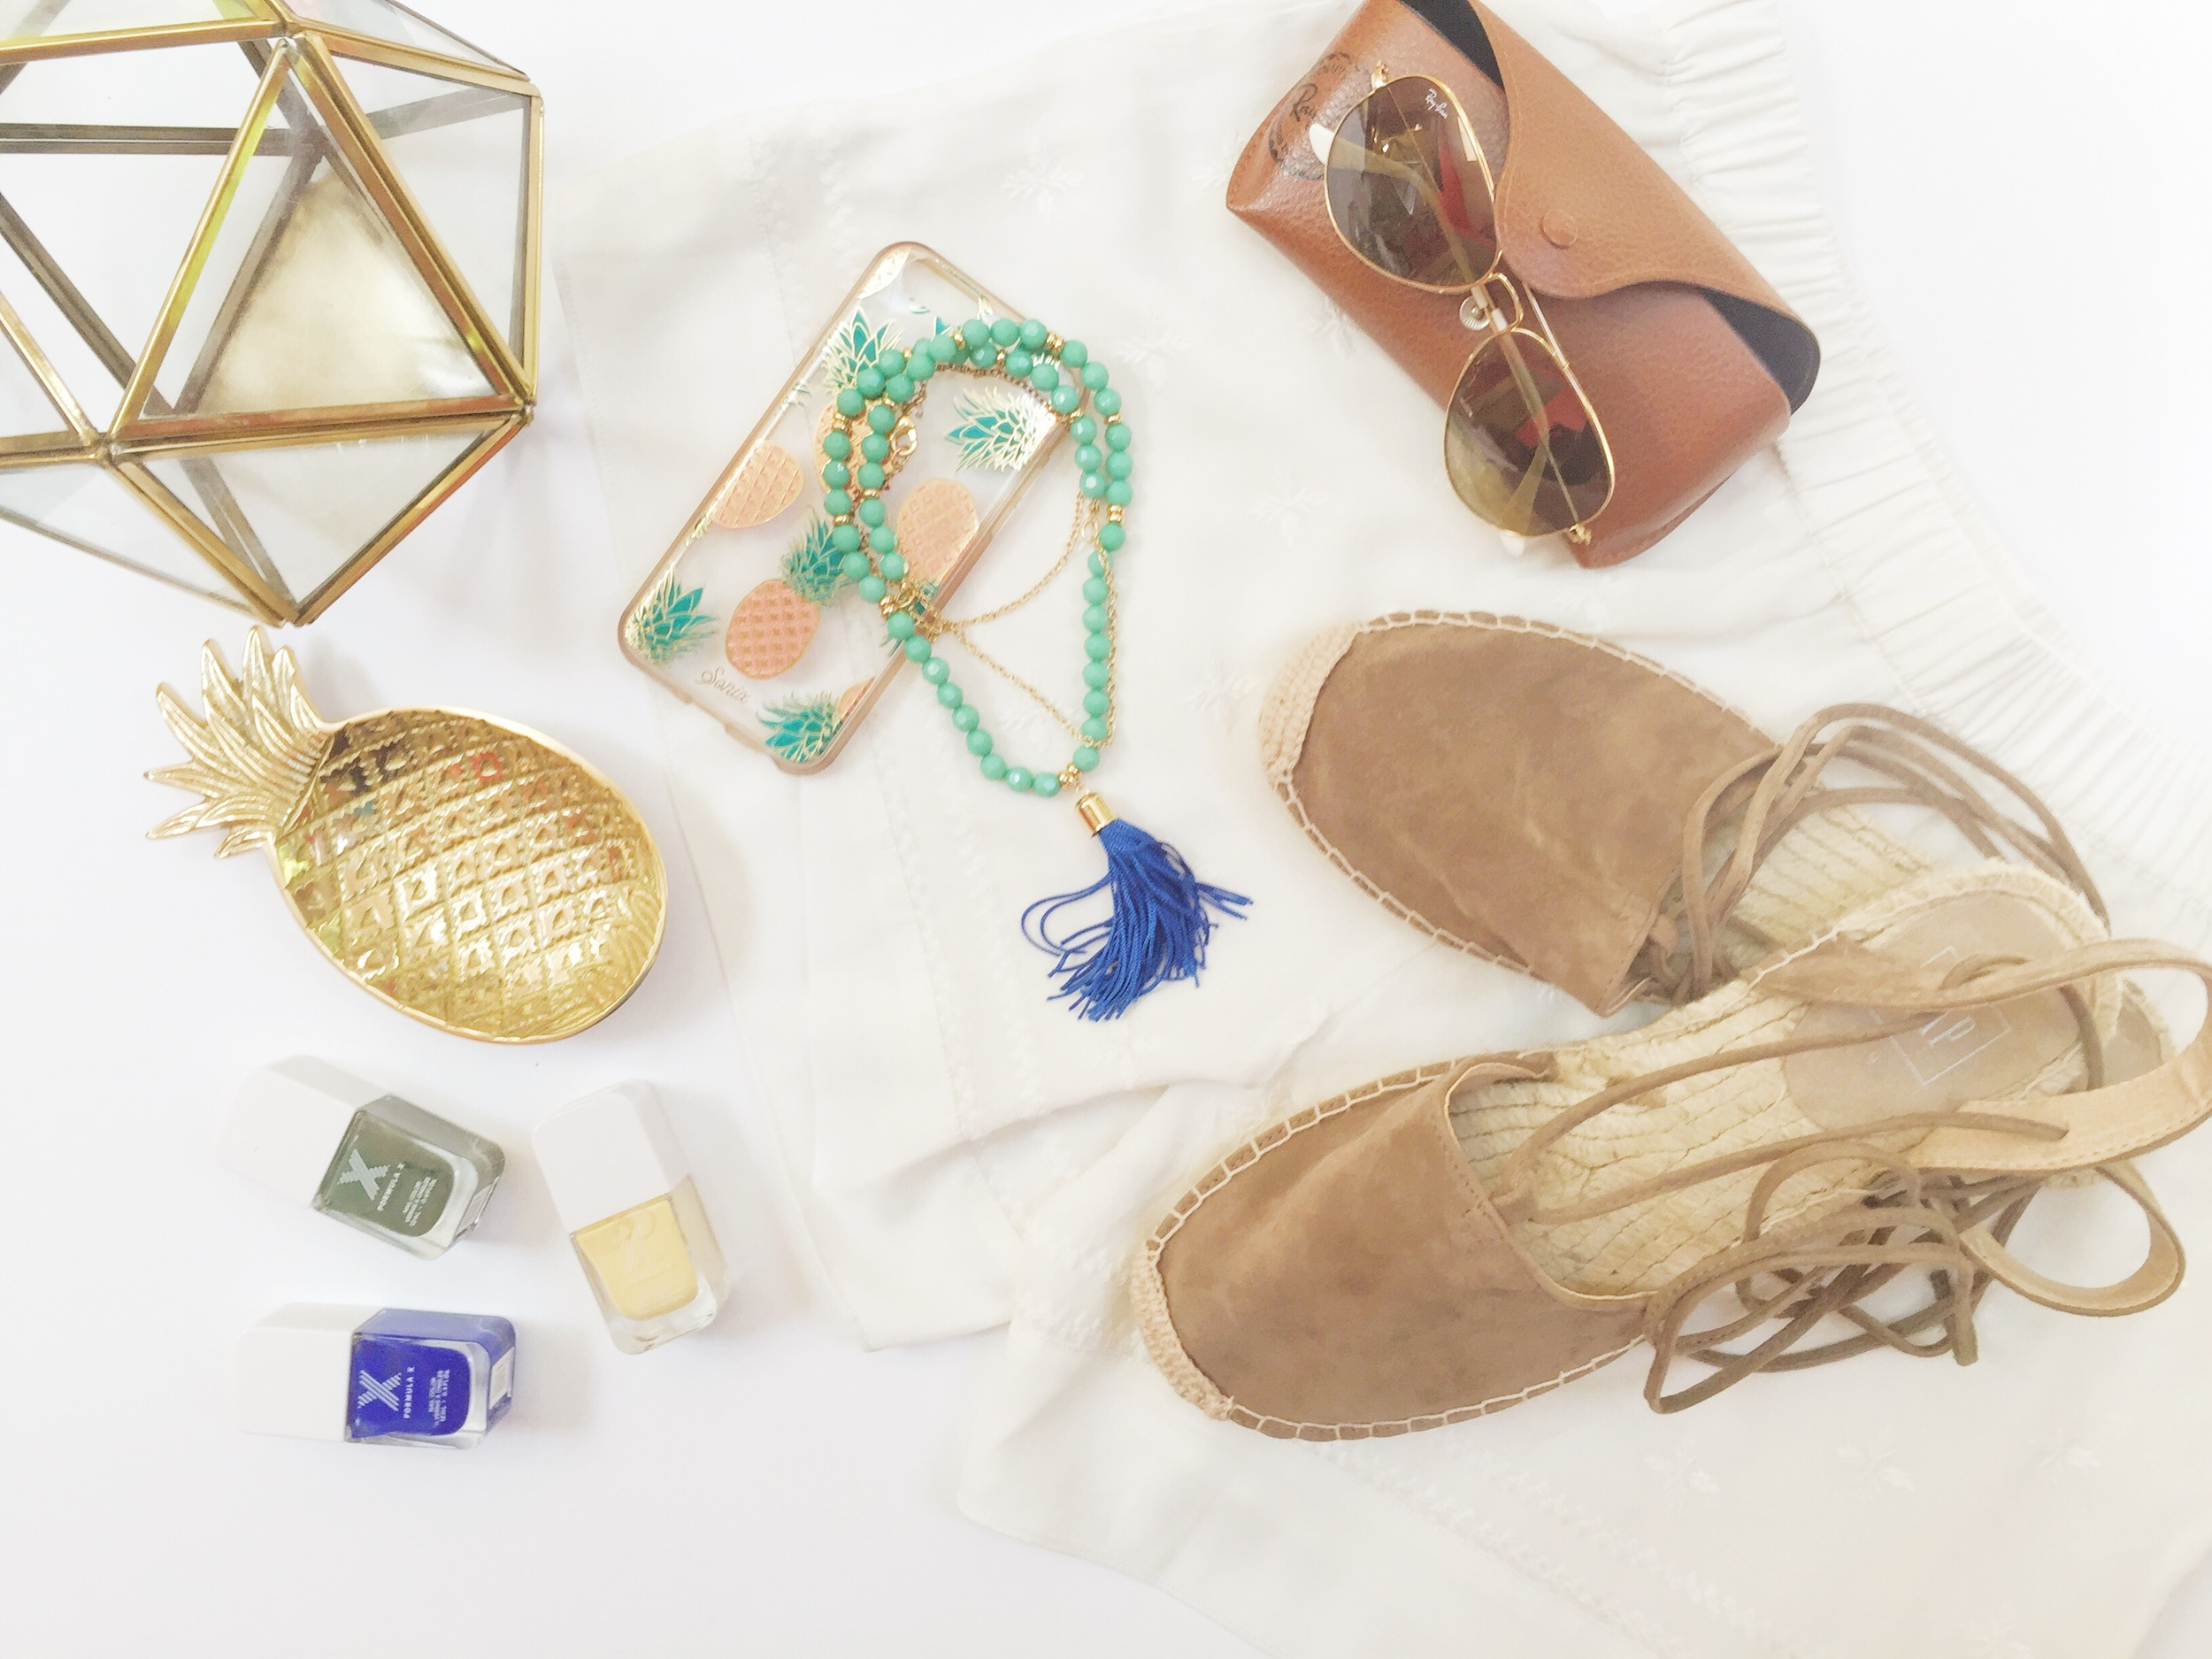 From top left to bottom right: (See bottom of post for a list of links to each item) Brass geo terrarium, pineapple phone case, beaded tassel necklace, aviators, pineapple trinket, nail varnish, embroidered shorts, lace up espadrilles.